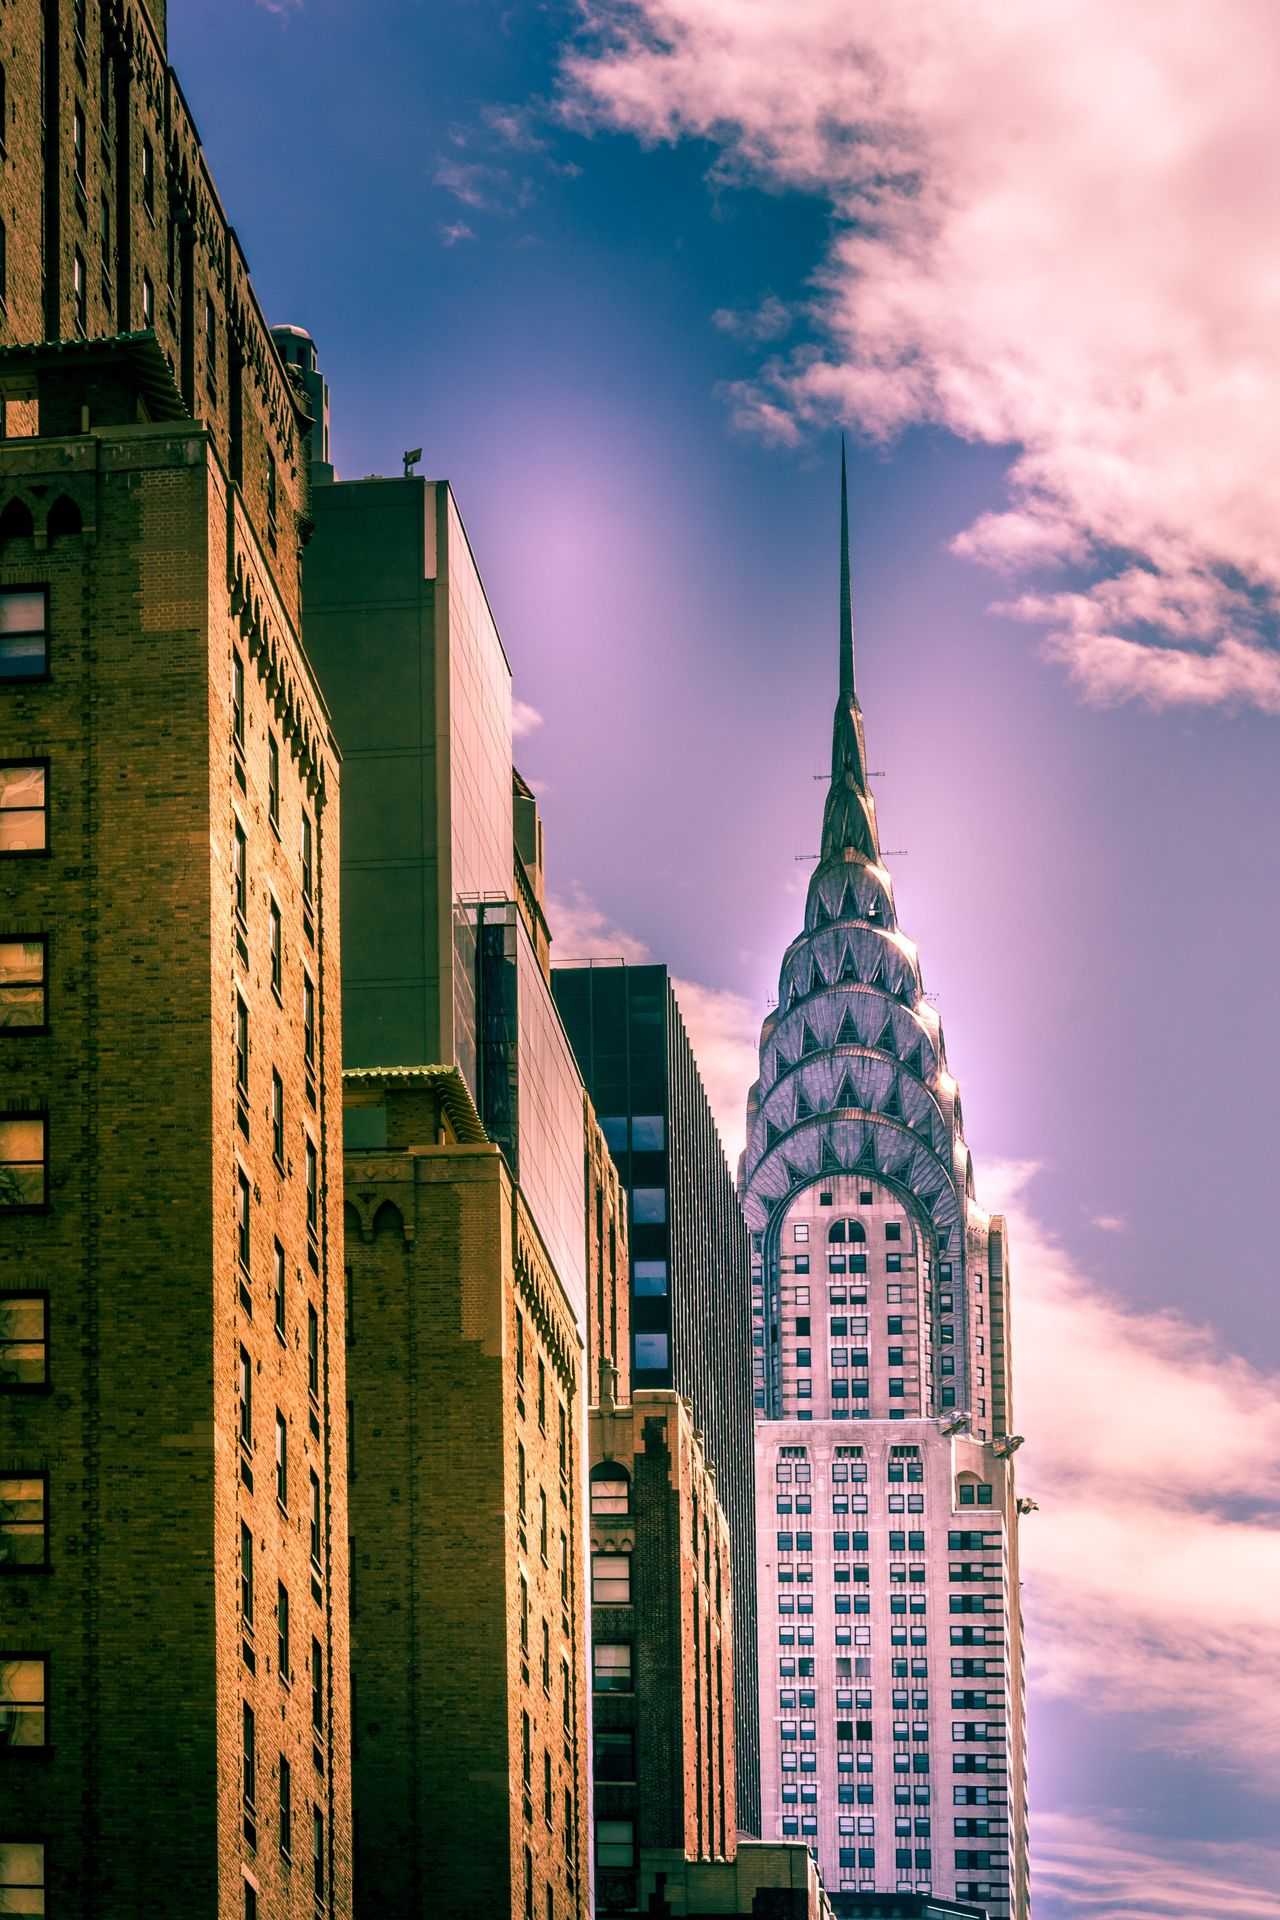 Architecture Building Exterior Built Structure Sky Skyscraper Modern Low Angle View Cloud - Sky Tower Travel Destinations Outdoors City No People Day Illuminated Ladyphotographerofthemonth New York